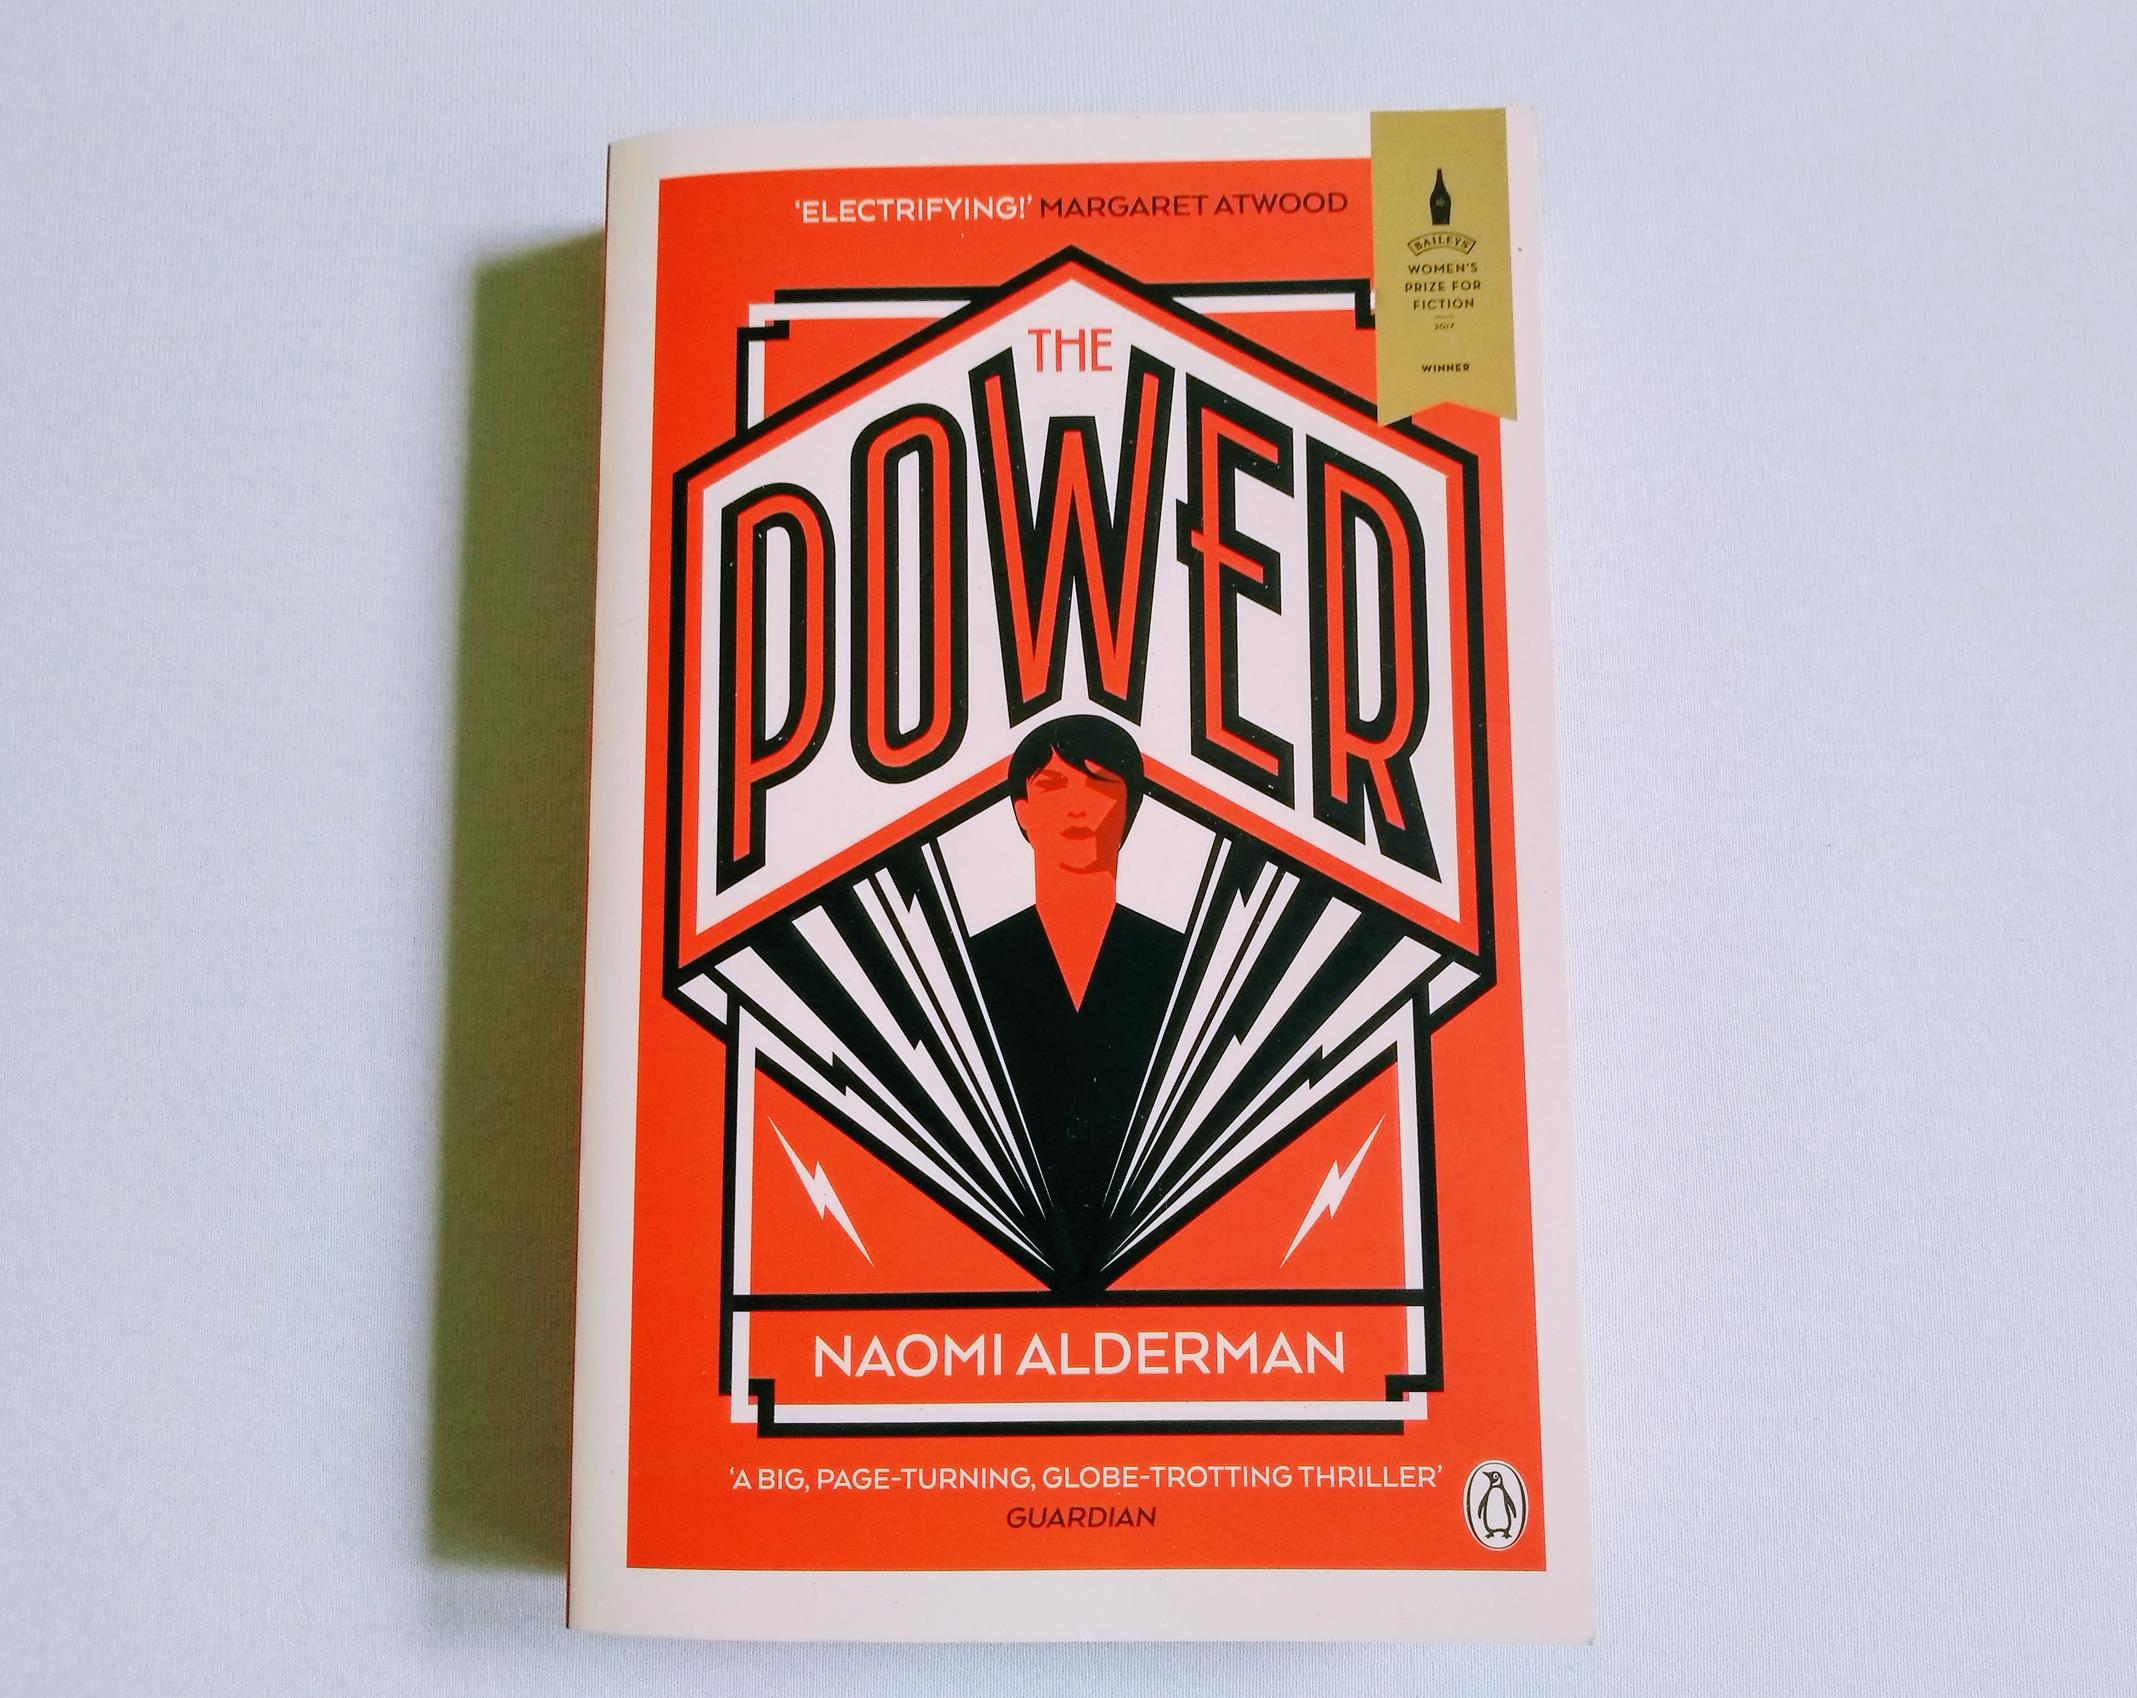 The Power_Naomi Alderman